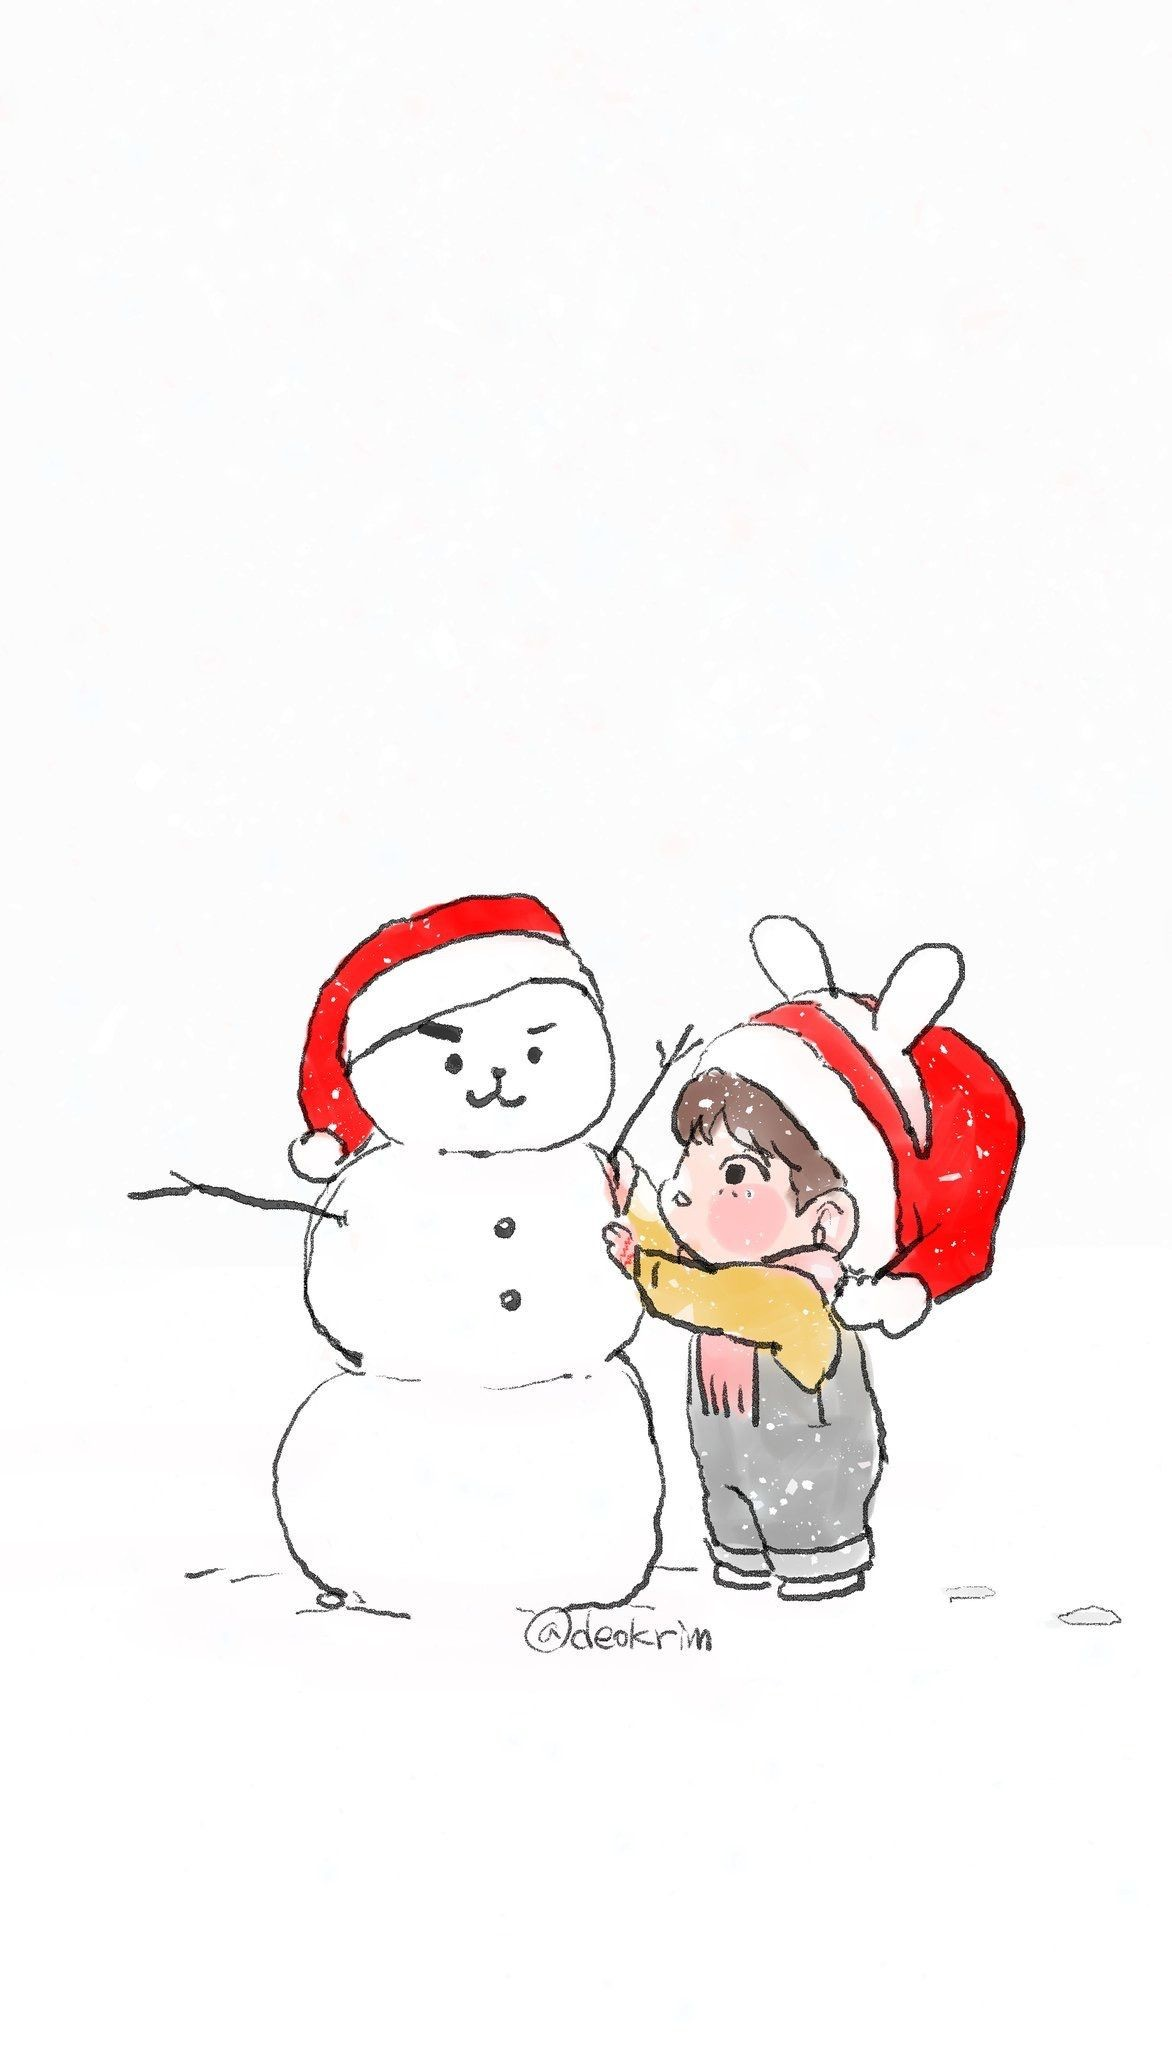 Res: 1172x2048, Bts Chibi, Wallpapers, Bts Wallpaper, Fanart, Merry Christmas, Kawaii,  Asia, Twitter, Kpop